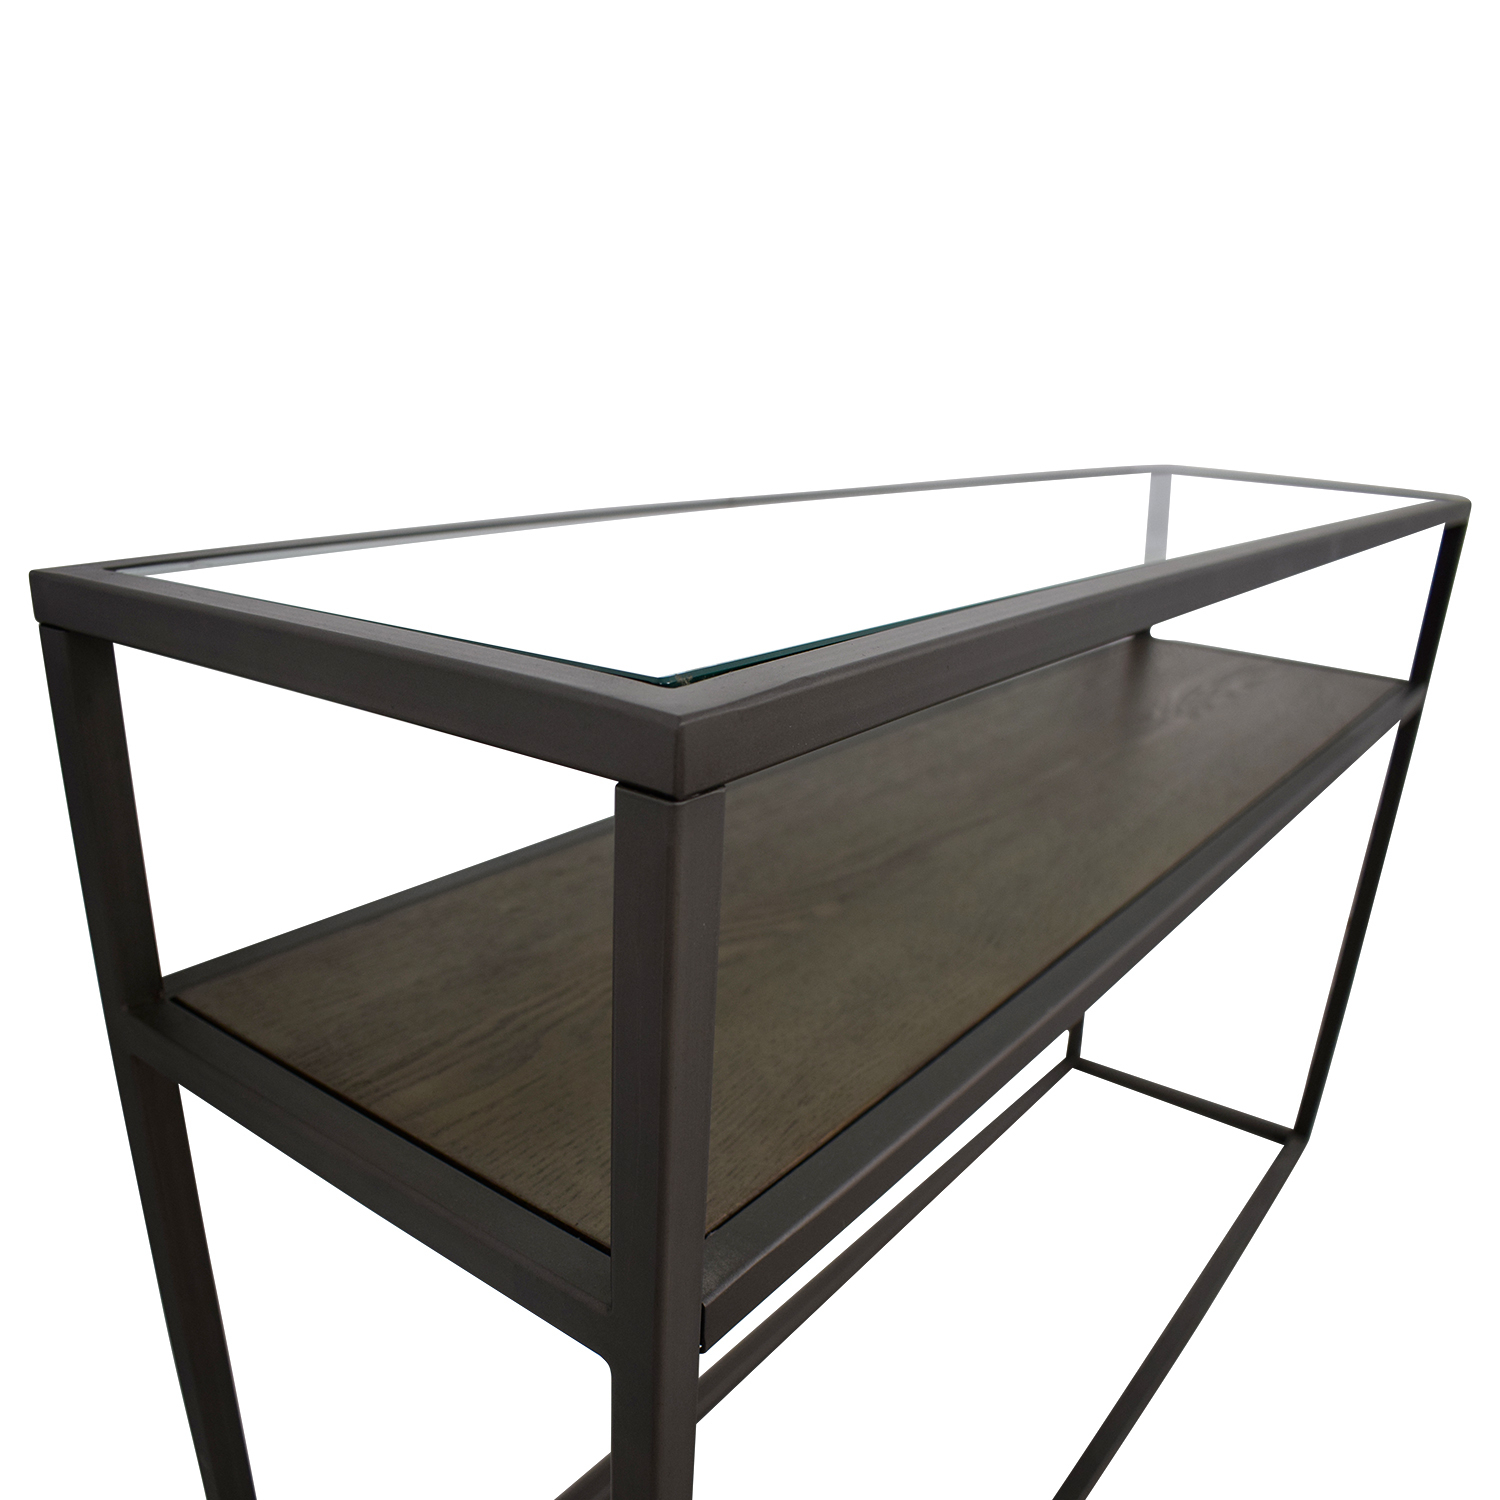 Crate & Barrel Switch Glass Wood And Metal Console Table Throughout Switch Console Tables (View 9 of 30)